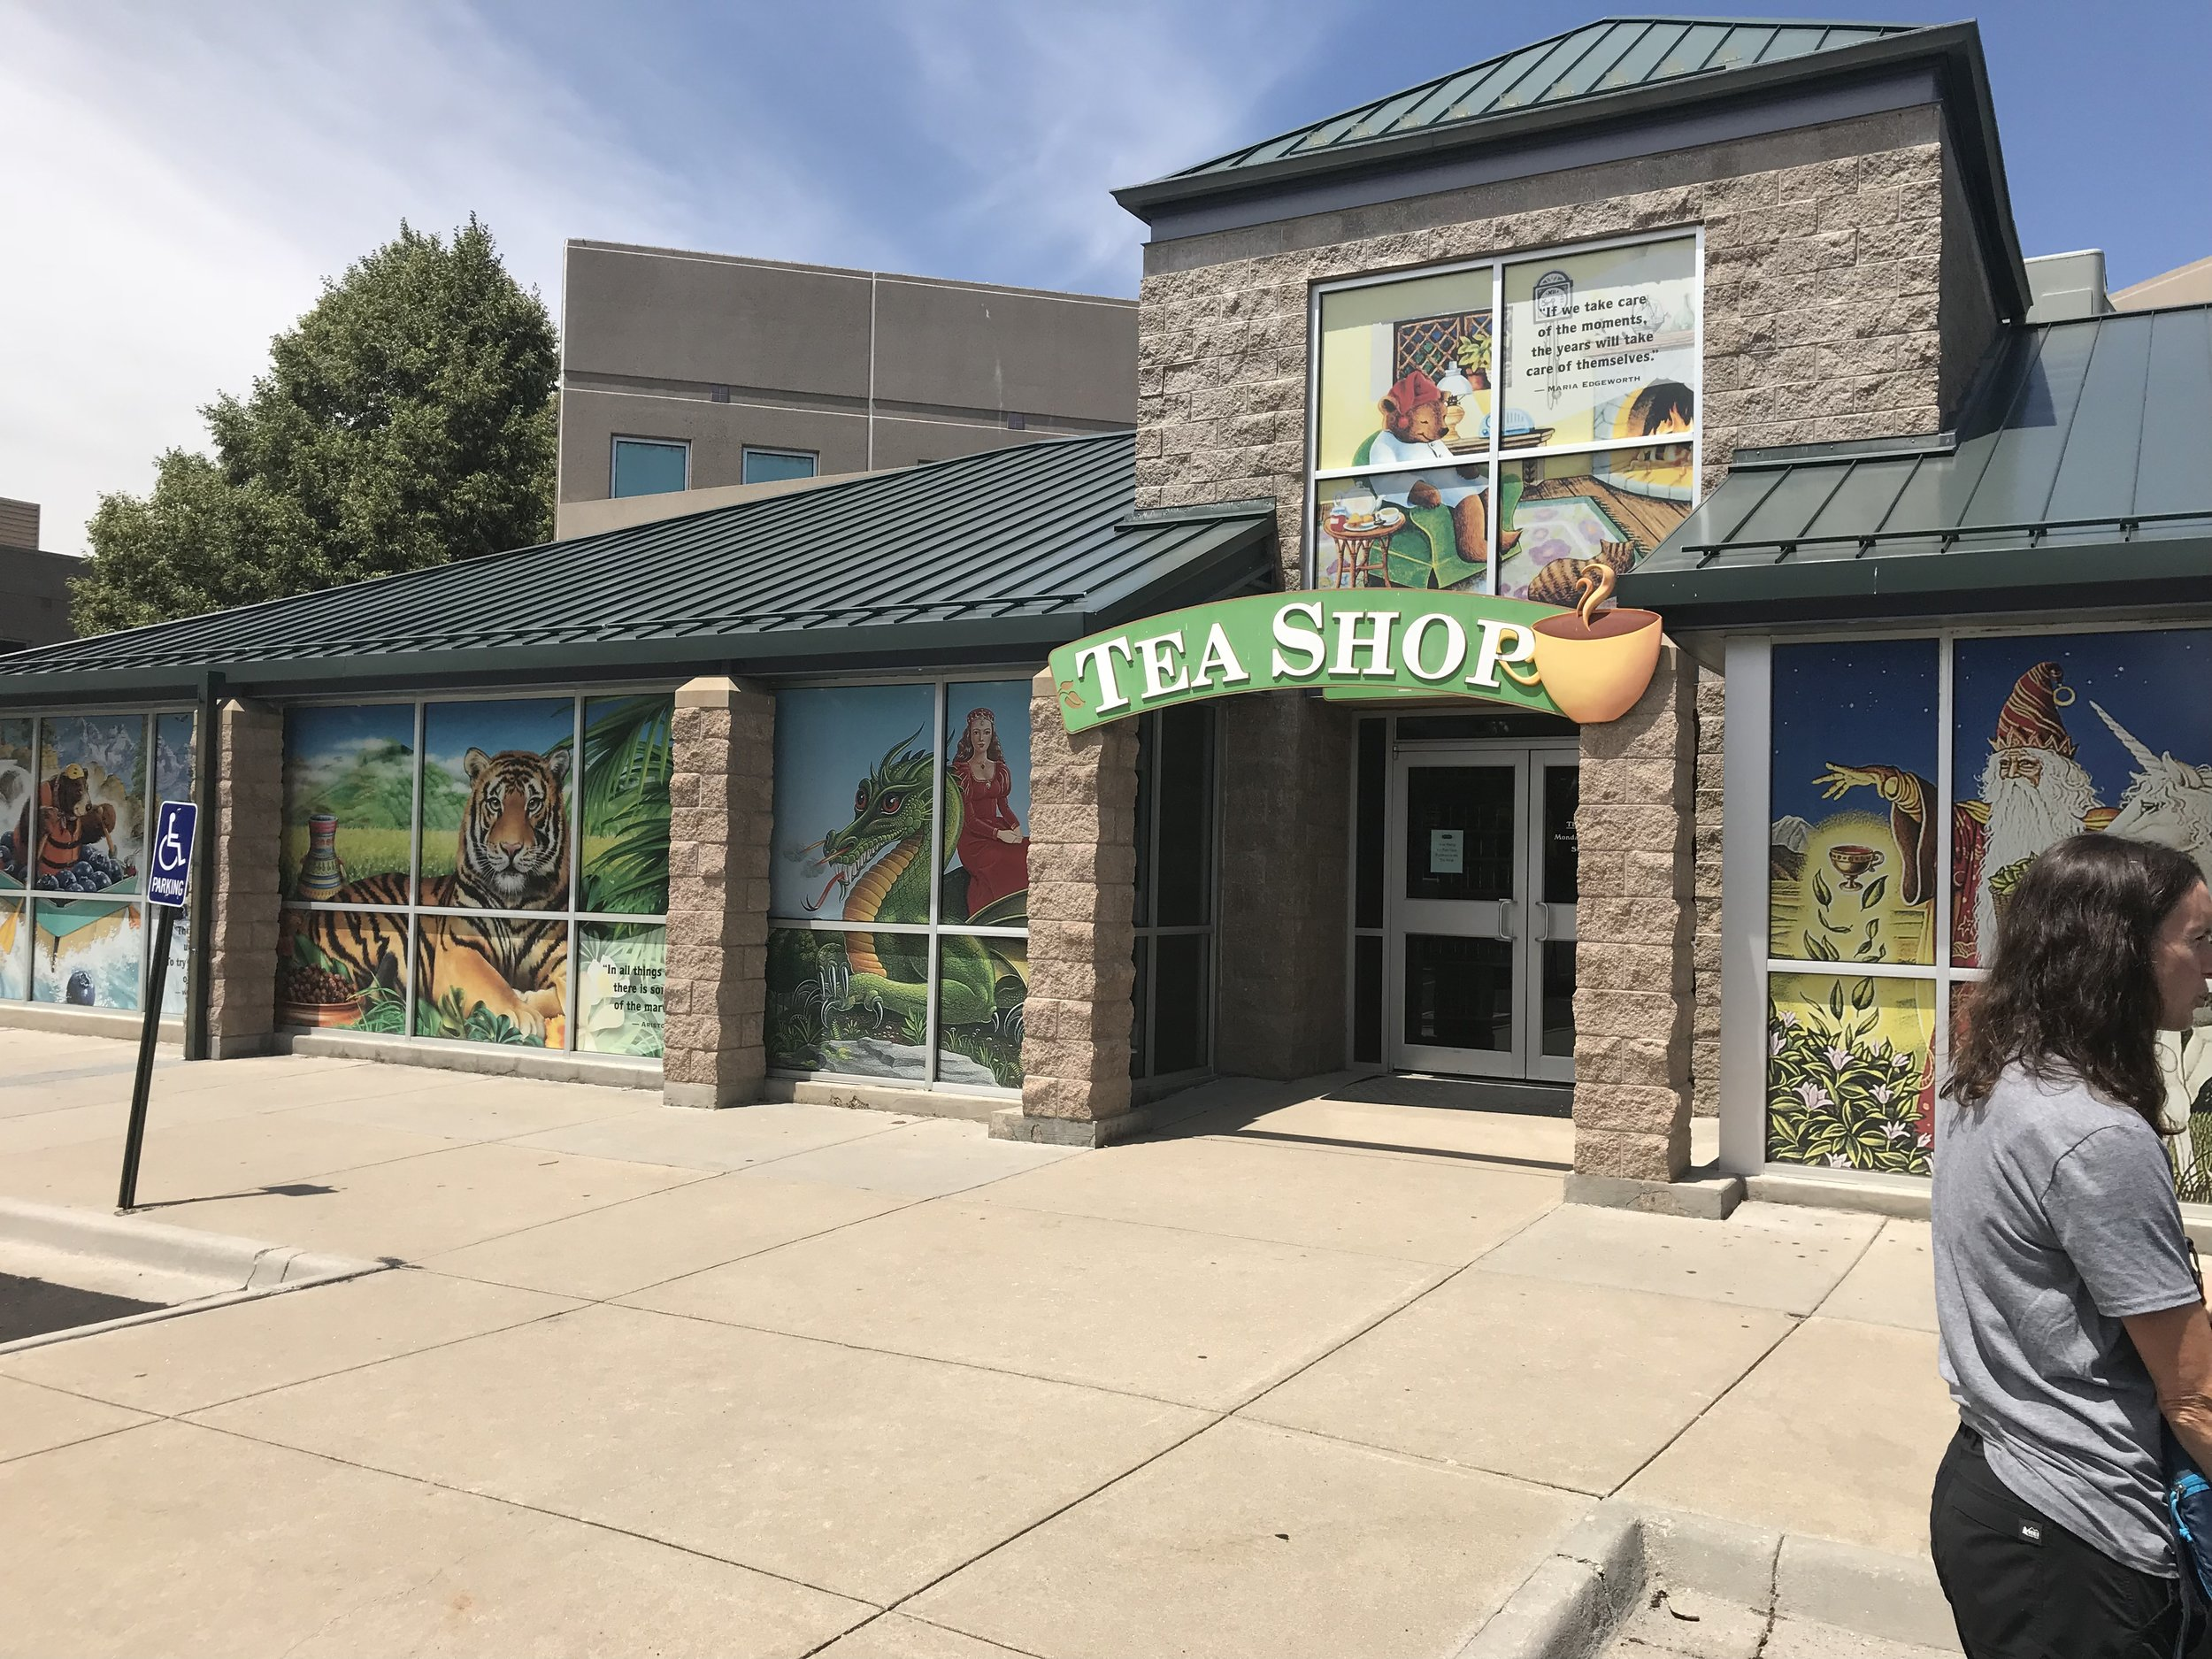 Steve went with us on a tour of Celestial Seasonings in Boulder (not the first time for most of us, but fun nonetheless).